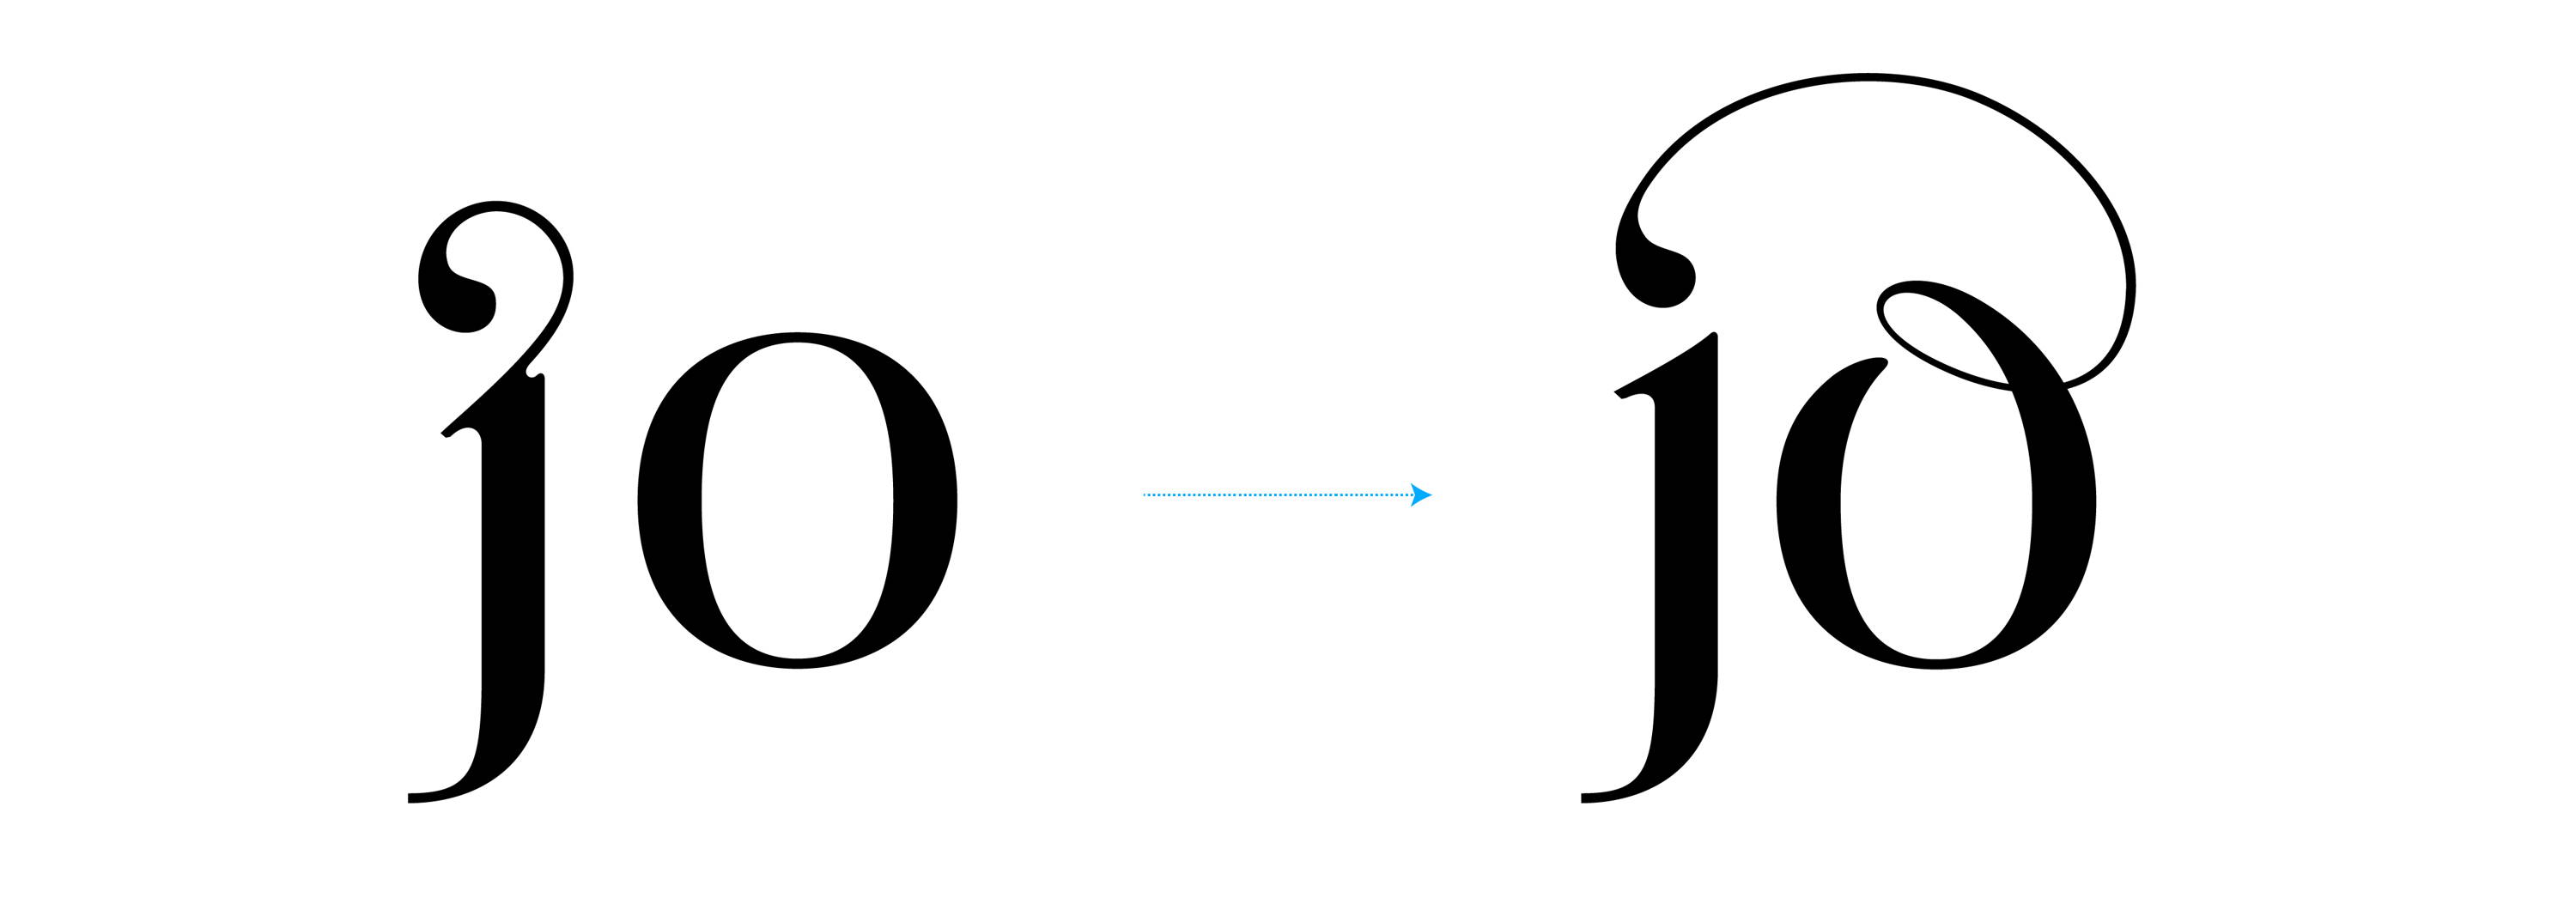 jo ligature, Paris Pro Typeface, fashion font, sexy font, logo fonts, best fonts 2020, sexy typeface, Vogue fonts, Vogue Typography, Cool fonts